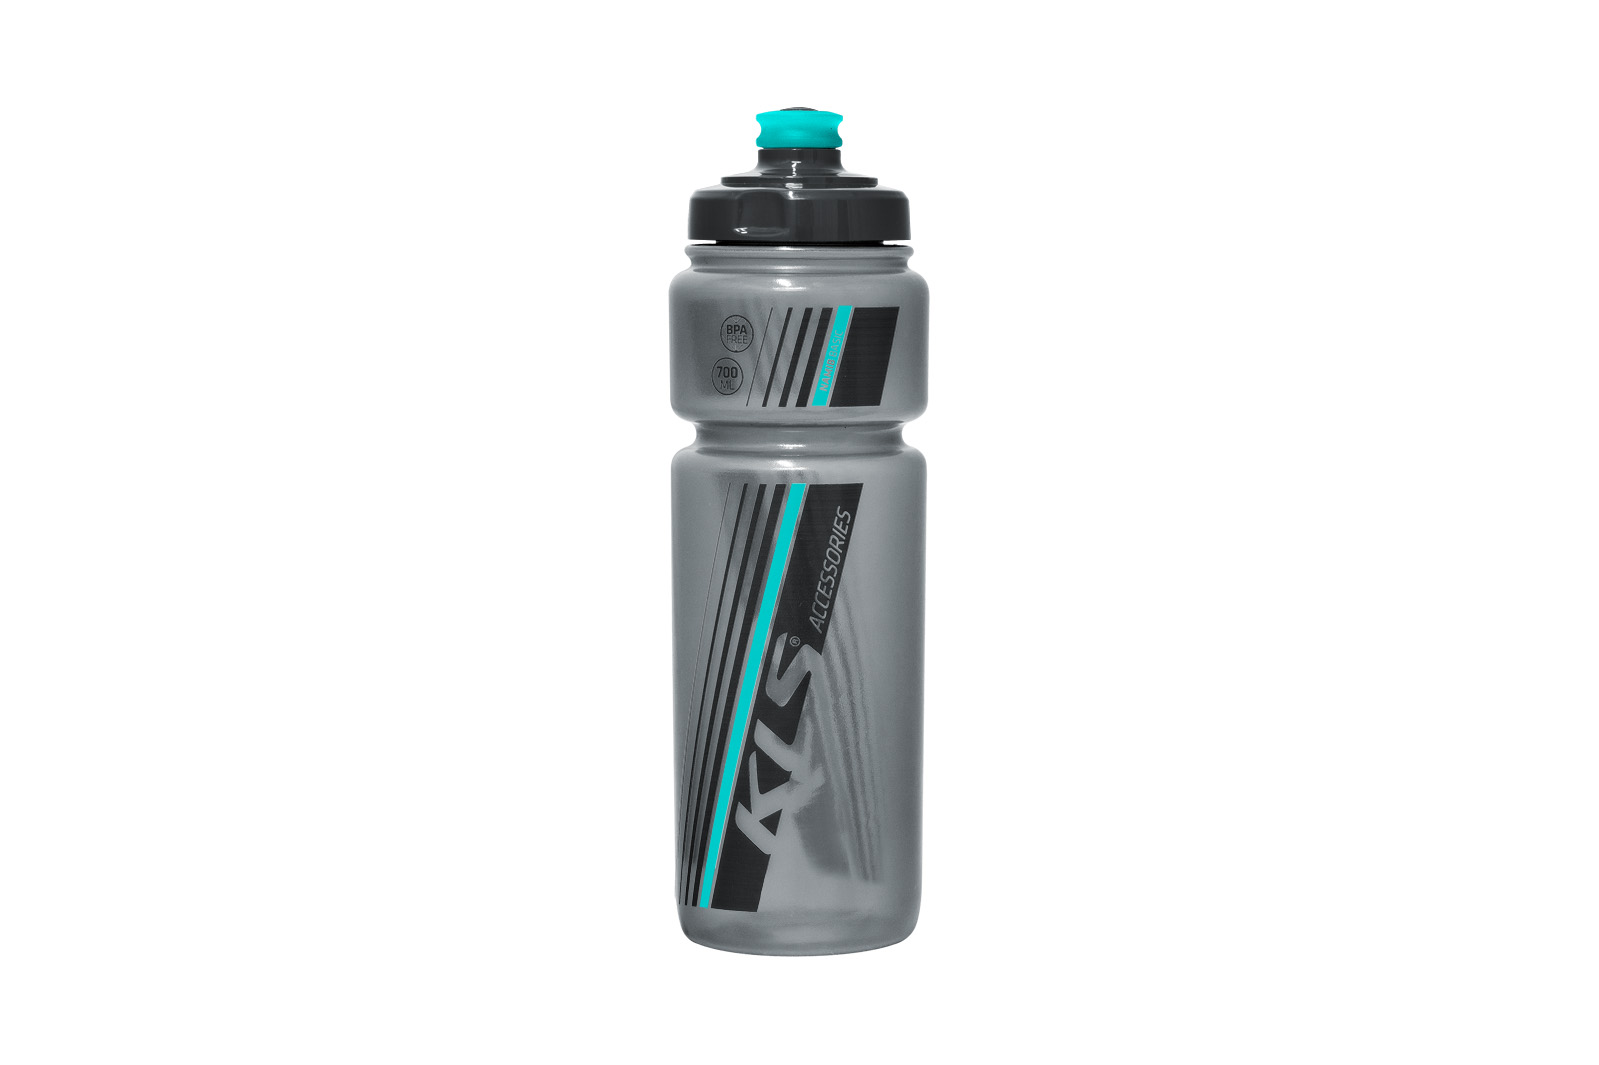 NAMIB Anthracite-Turquoise 0,7l - Bike Schmiede Biesenrode GbR